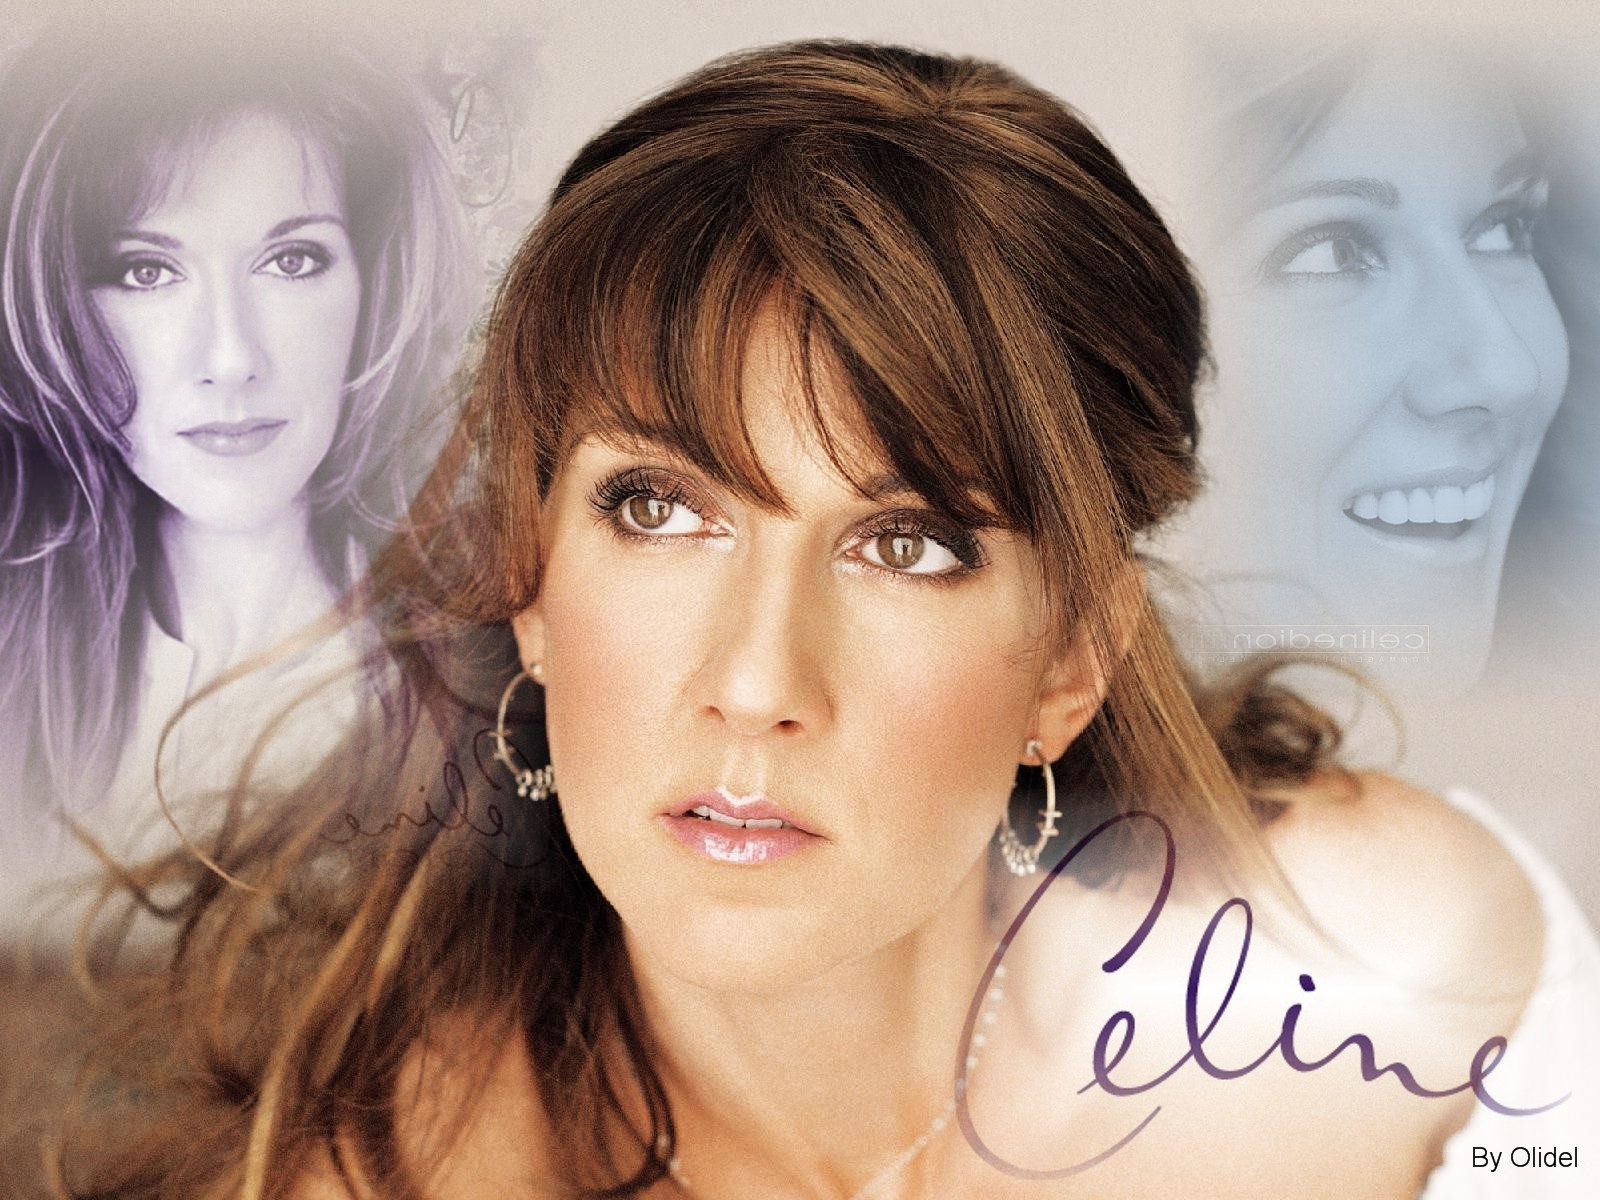 http://staalplaat.files.wordpress.com/2009/06/celine-dion.jpg